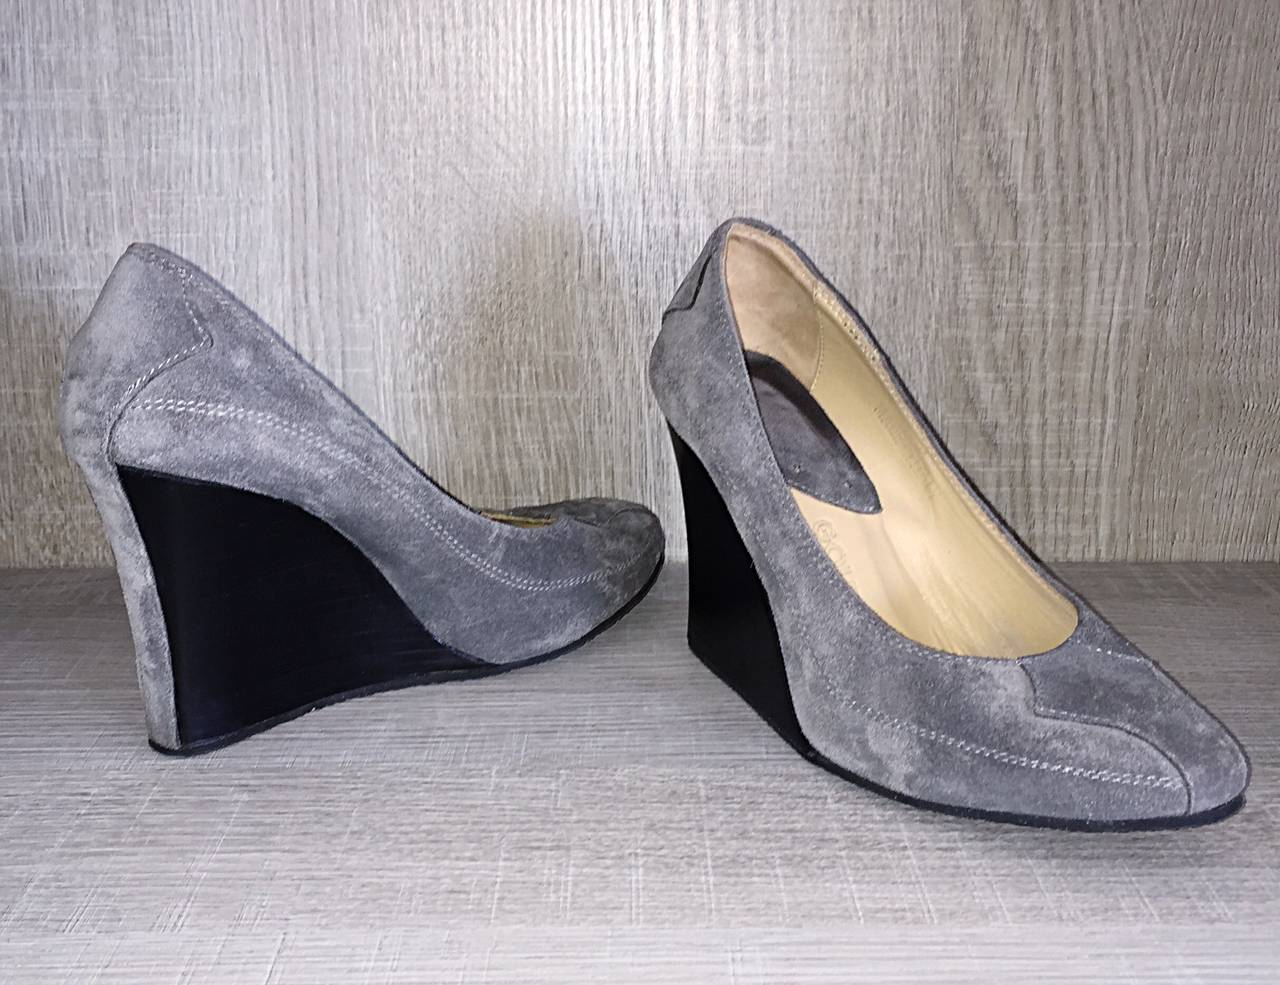 Never Worn Goldenbleu Gray Shoes / Wedges Size 36.5 / 6 - 6.5 Made in Italy For Sale 3